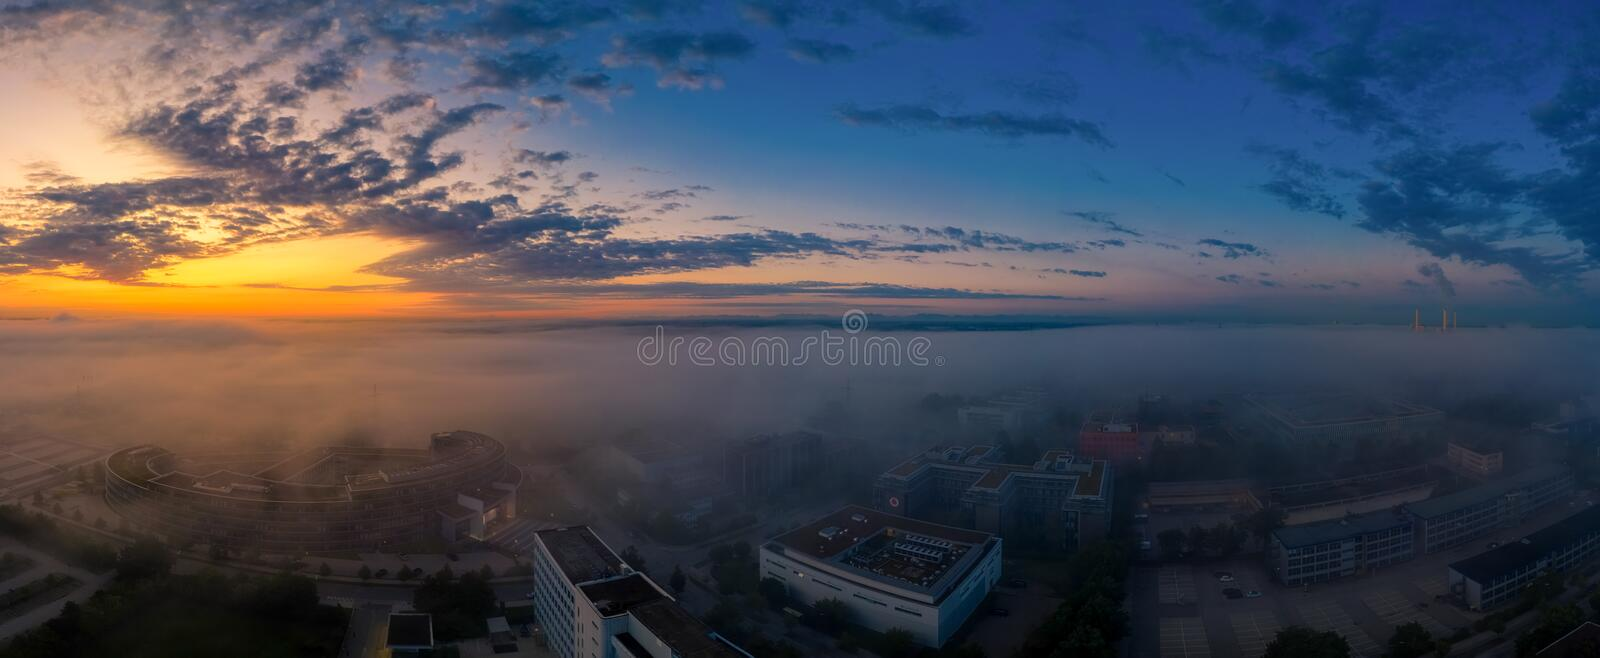 A beautiful sunrise as an aerial with a total view over fields, office buildings and a lake stock photos